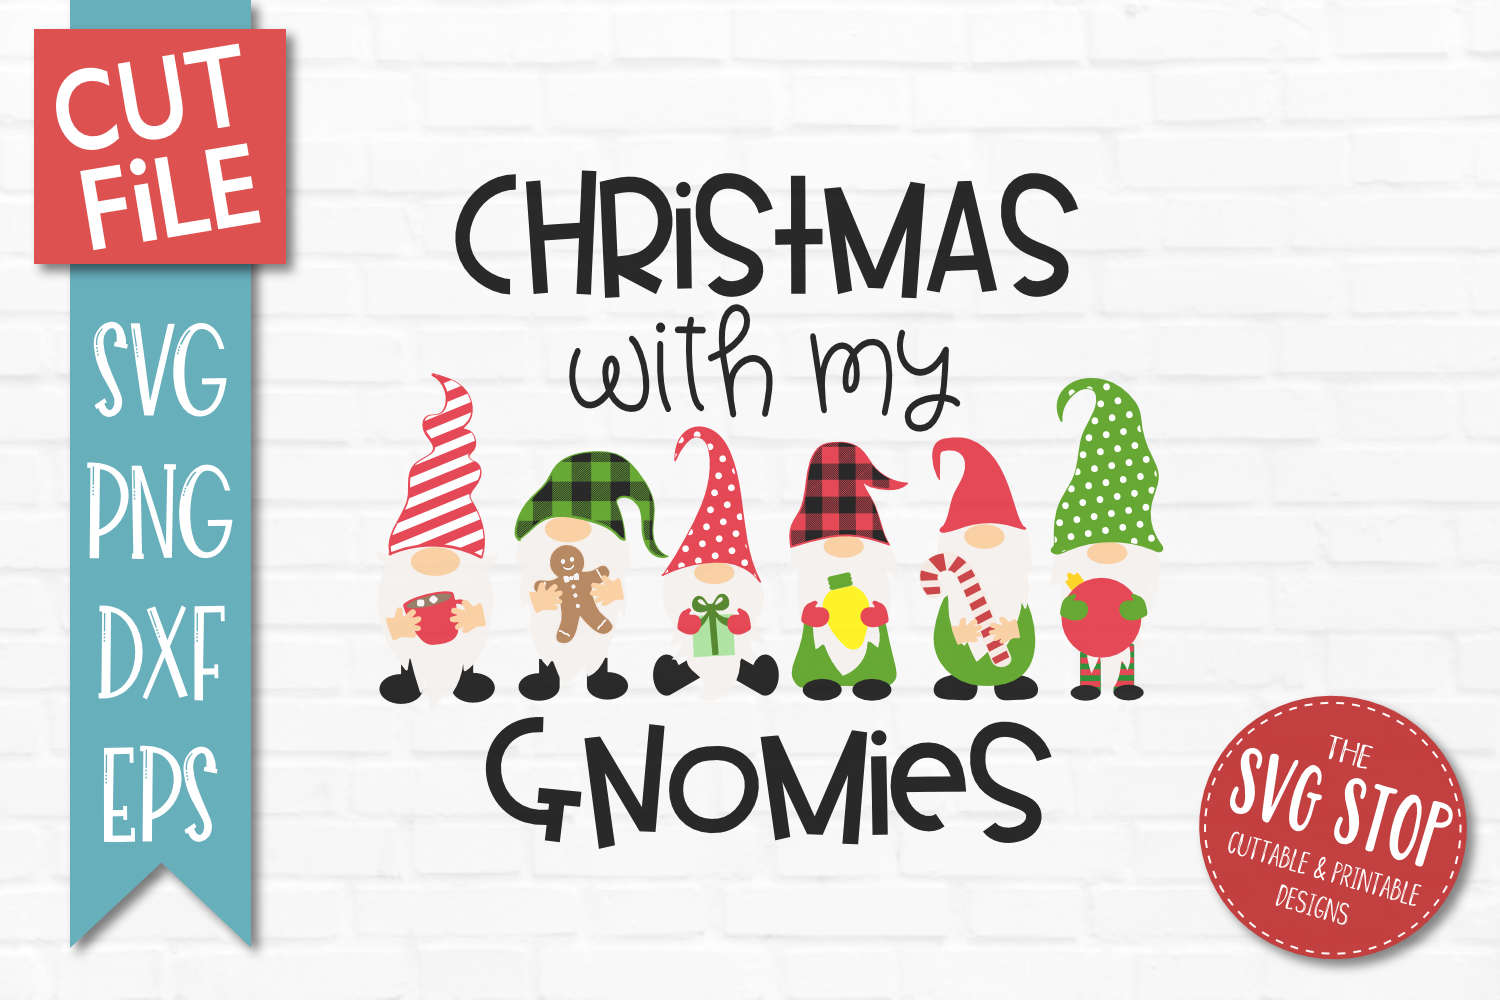 Christmas With My Gnomies SVG, PNG, DXF, EPS example image 1